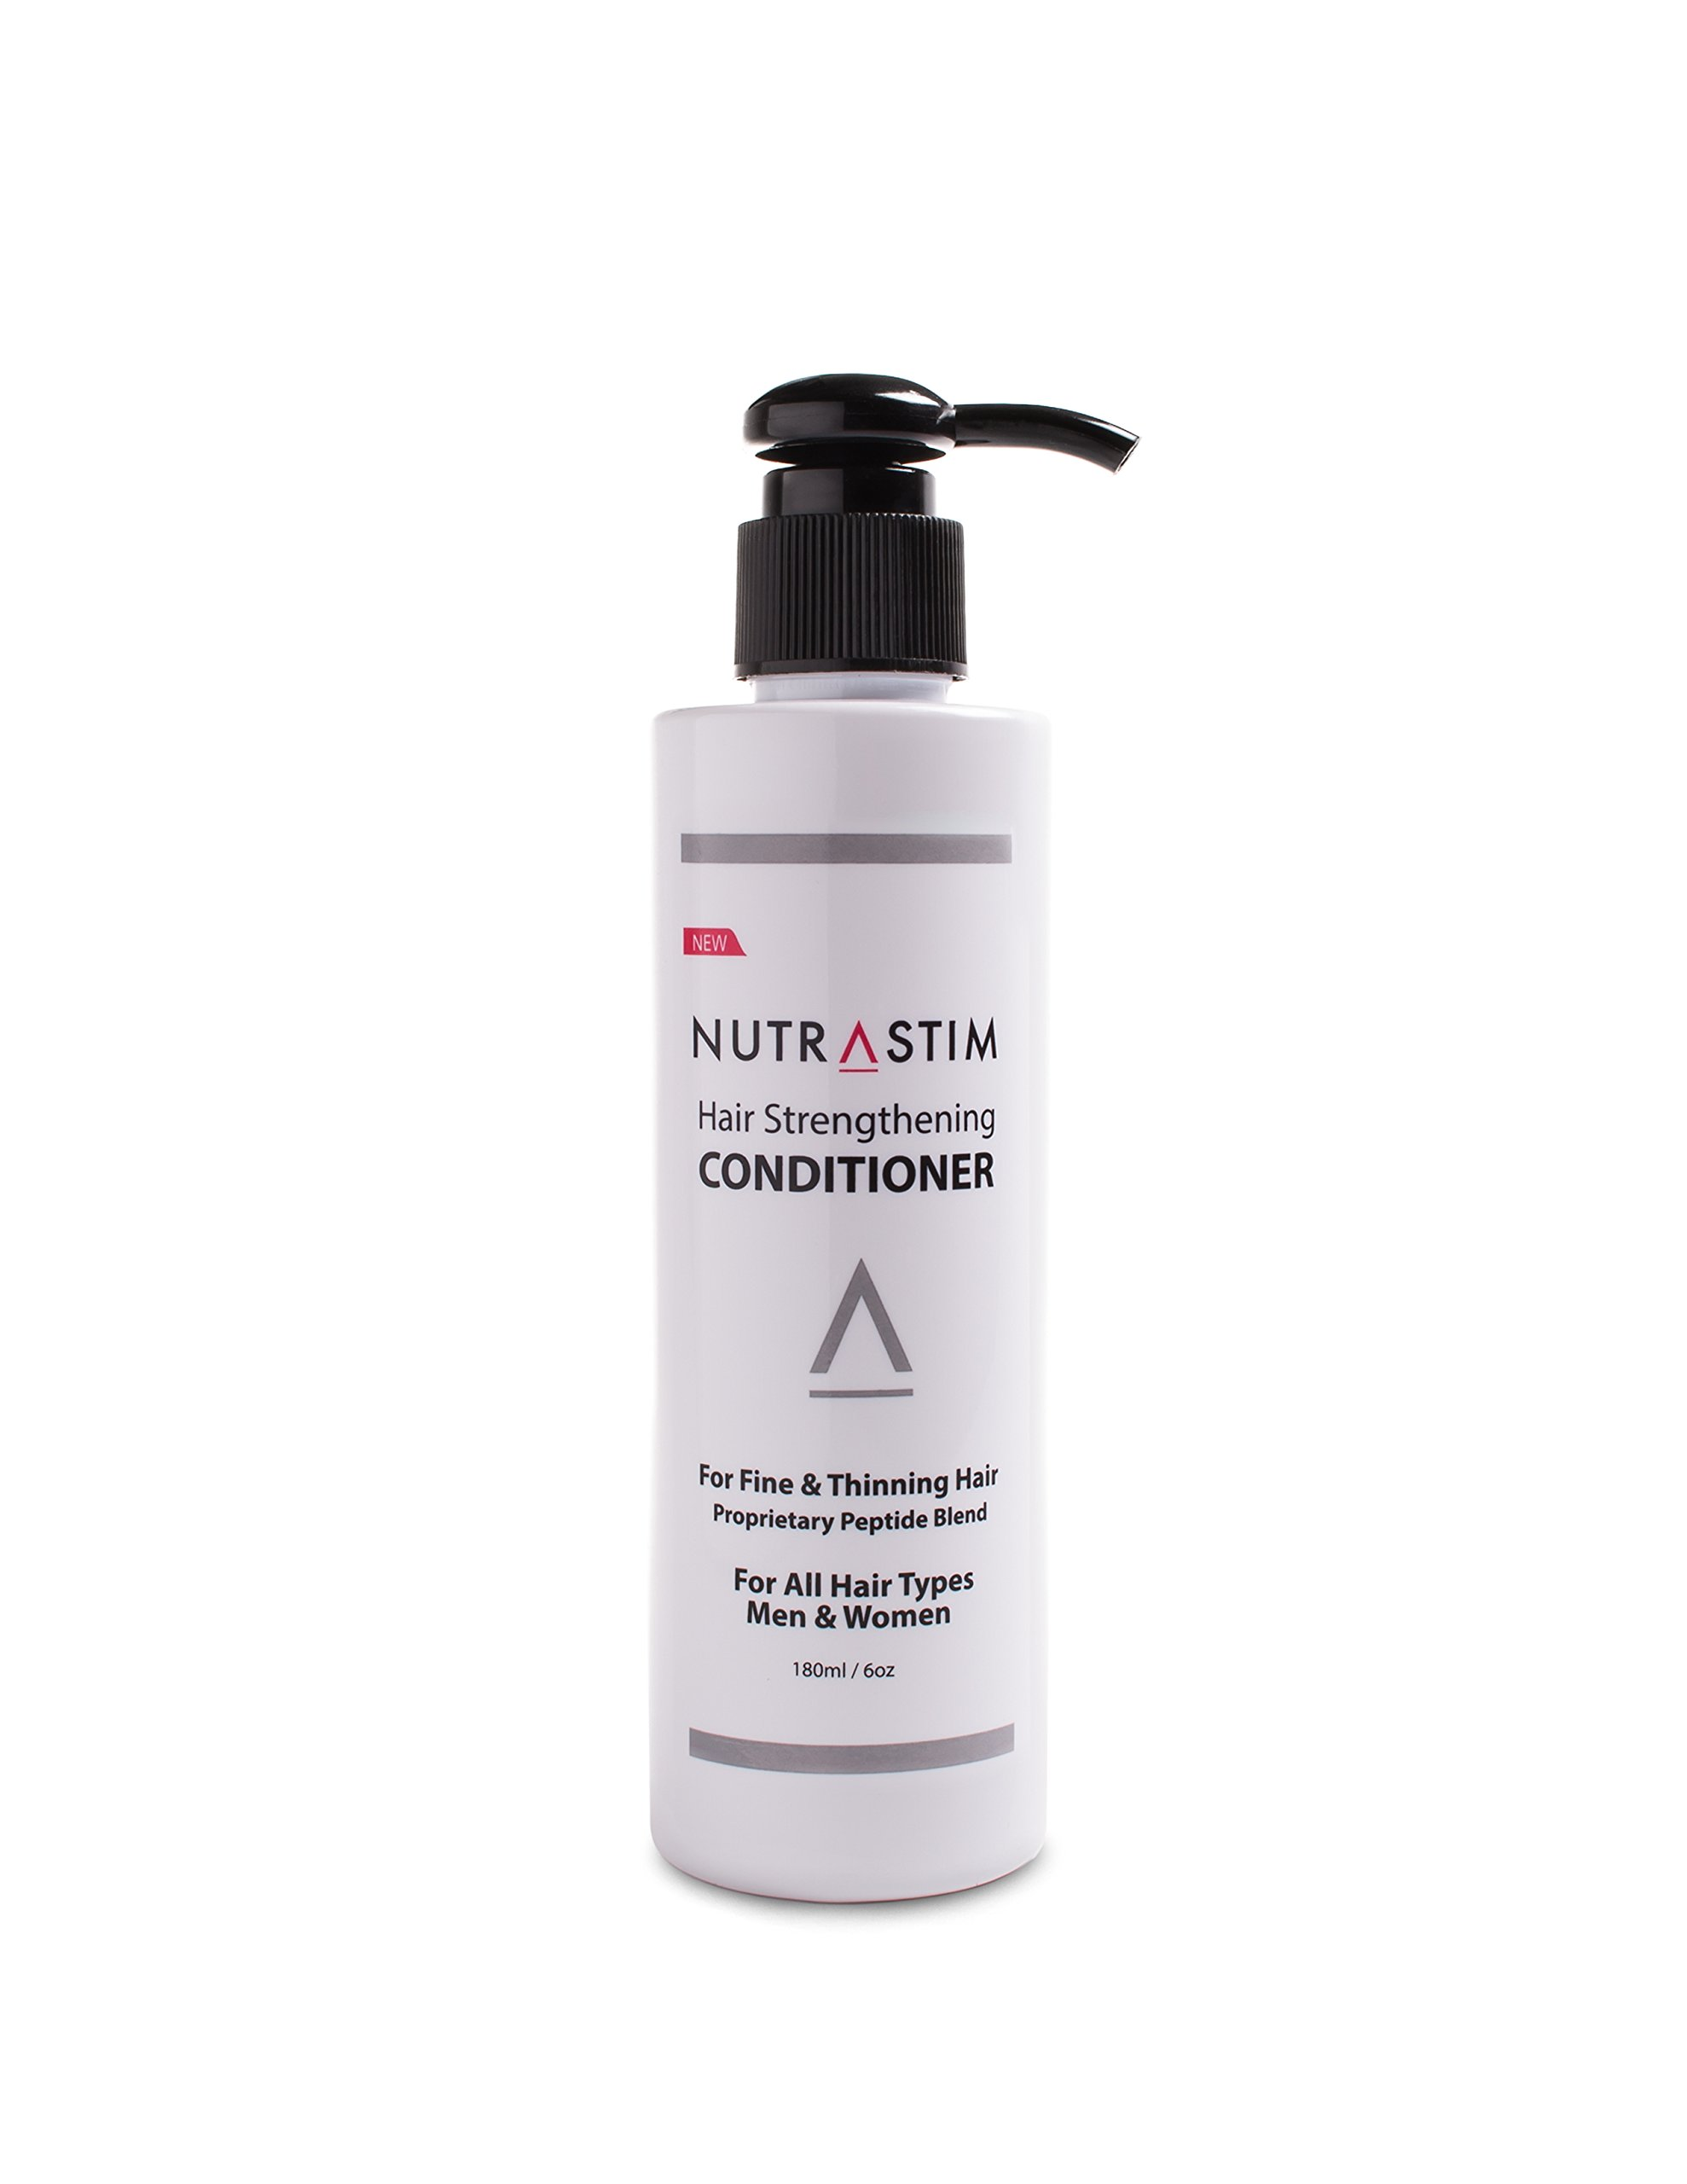 NutraStim Hair Strengthening Conditioner Anti-Thinning, Infused with Niacin, Biotin, Caffeine, Antioxidants and Other Natural Ingredients for All Hair Types, Men and Women